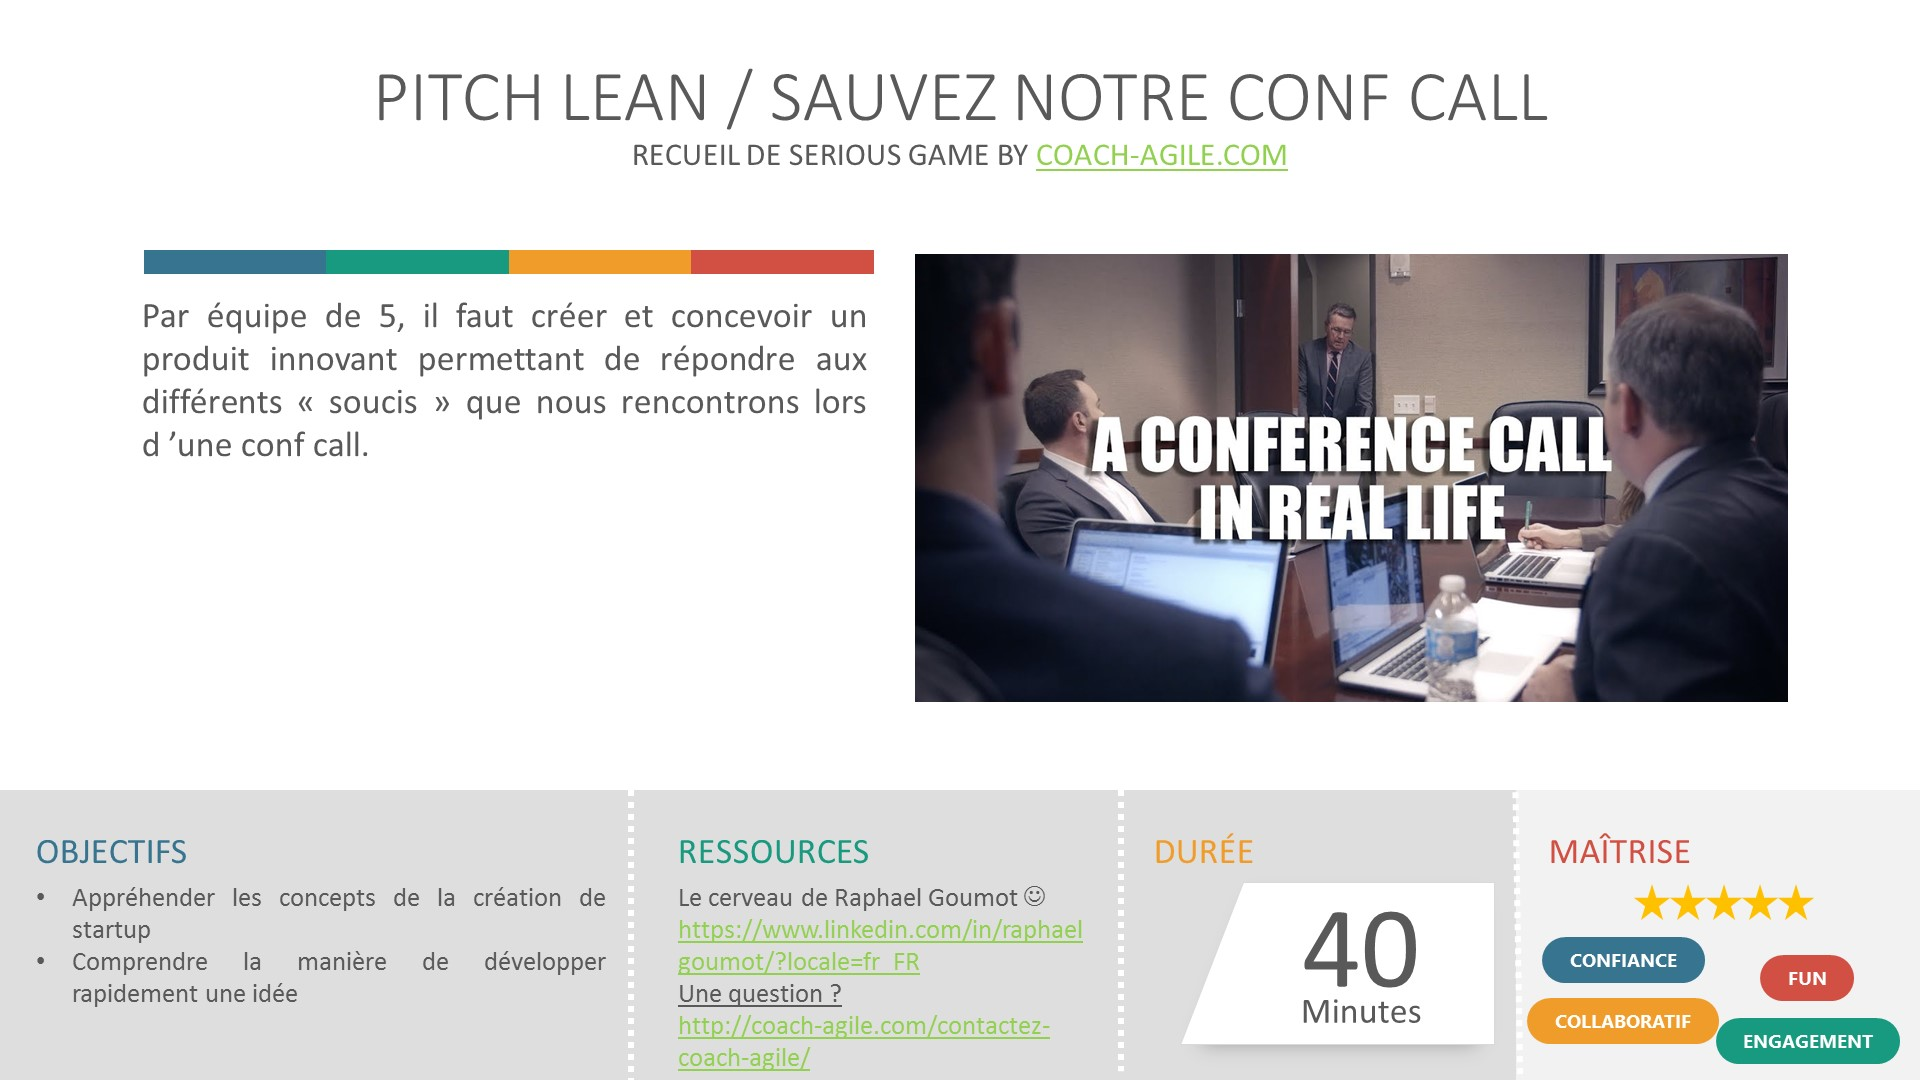 SERIOUS GAME : PITCH LEAN / SAUVEZ NOTRE CONF CALL